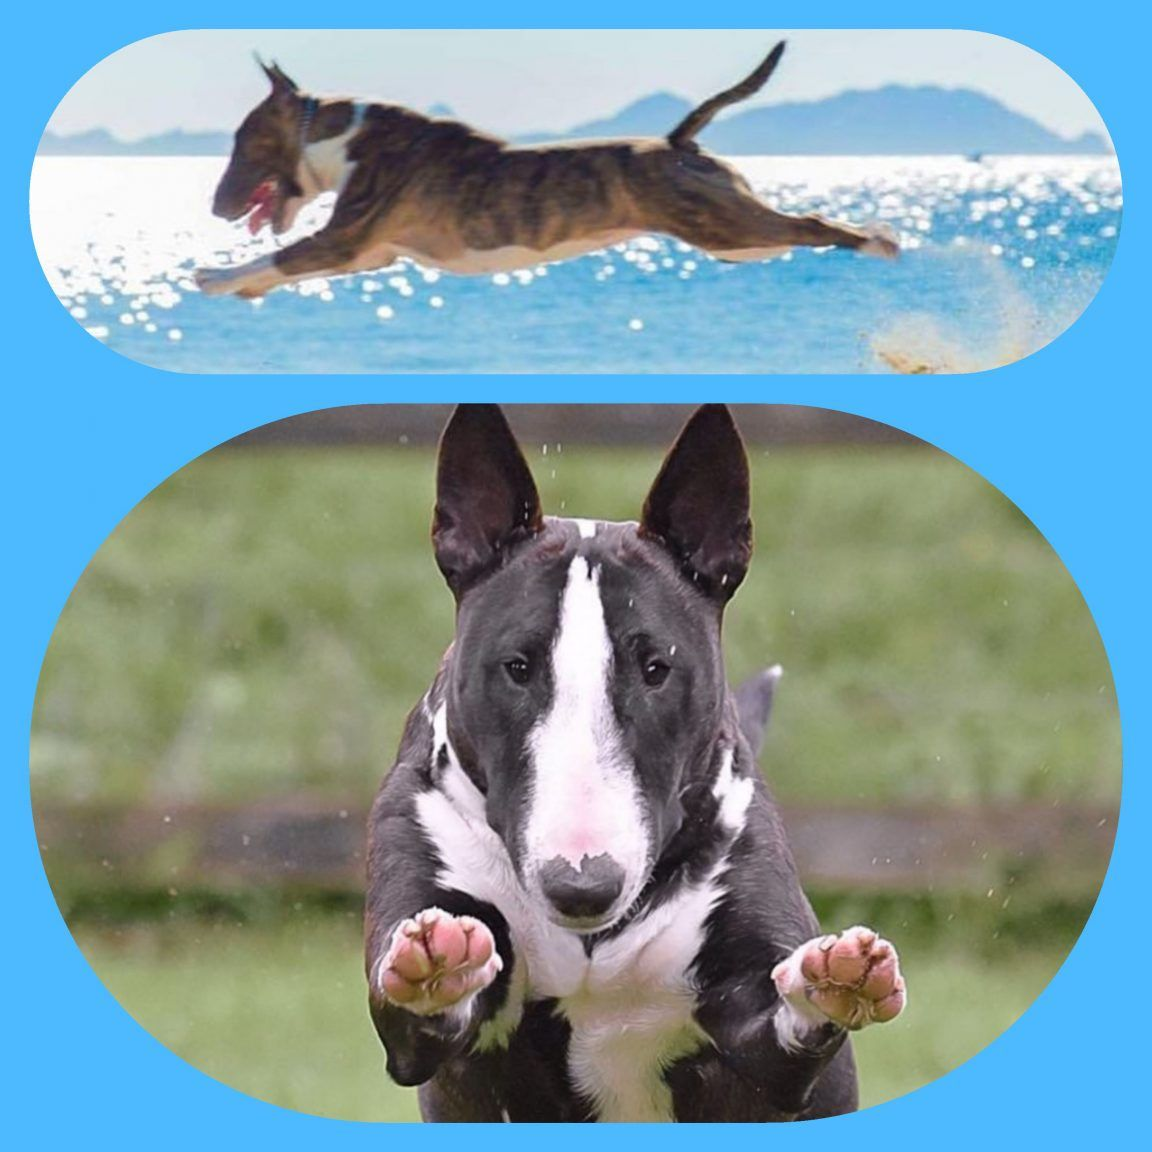 12 Funny English Bull Terrier Dog Pictures Page 5 Of 5 The Paws English Bull Terriers Bull Terrier Pitbull Terrier